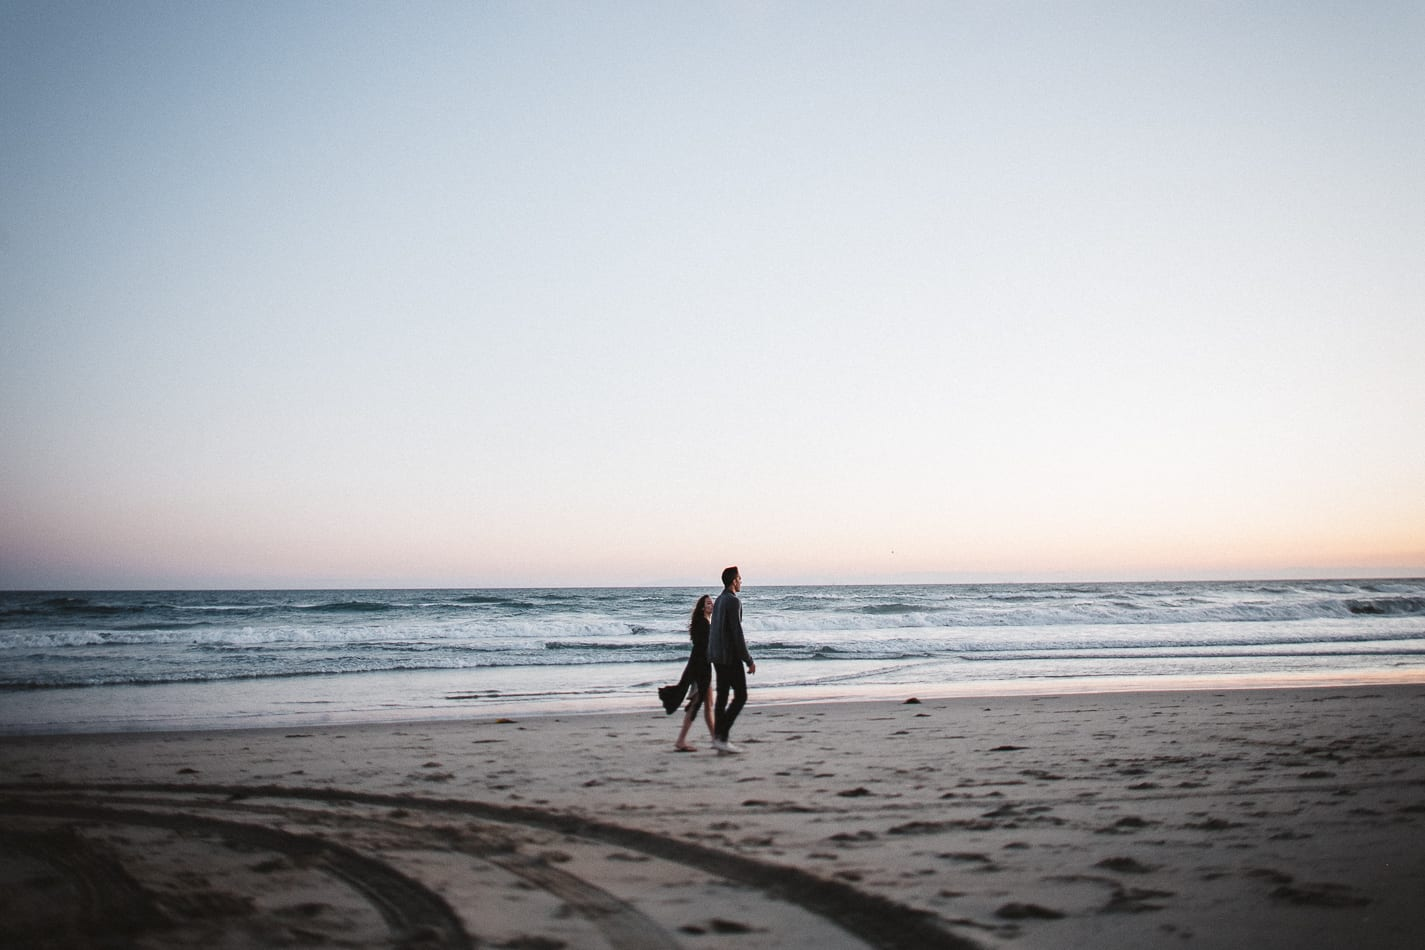 jason-alyssa-huntington-beach-california-engagement-photographer-39